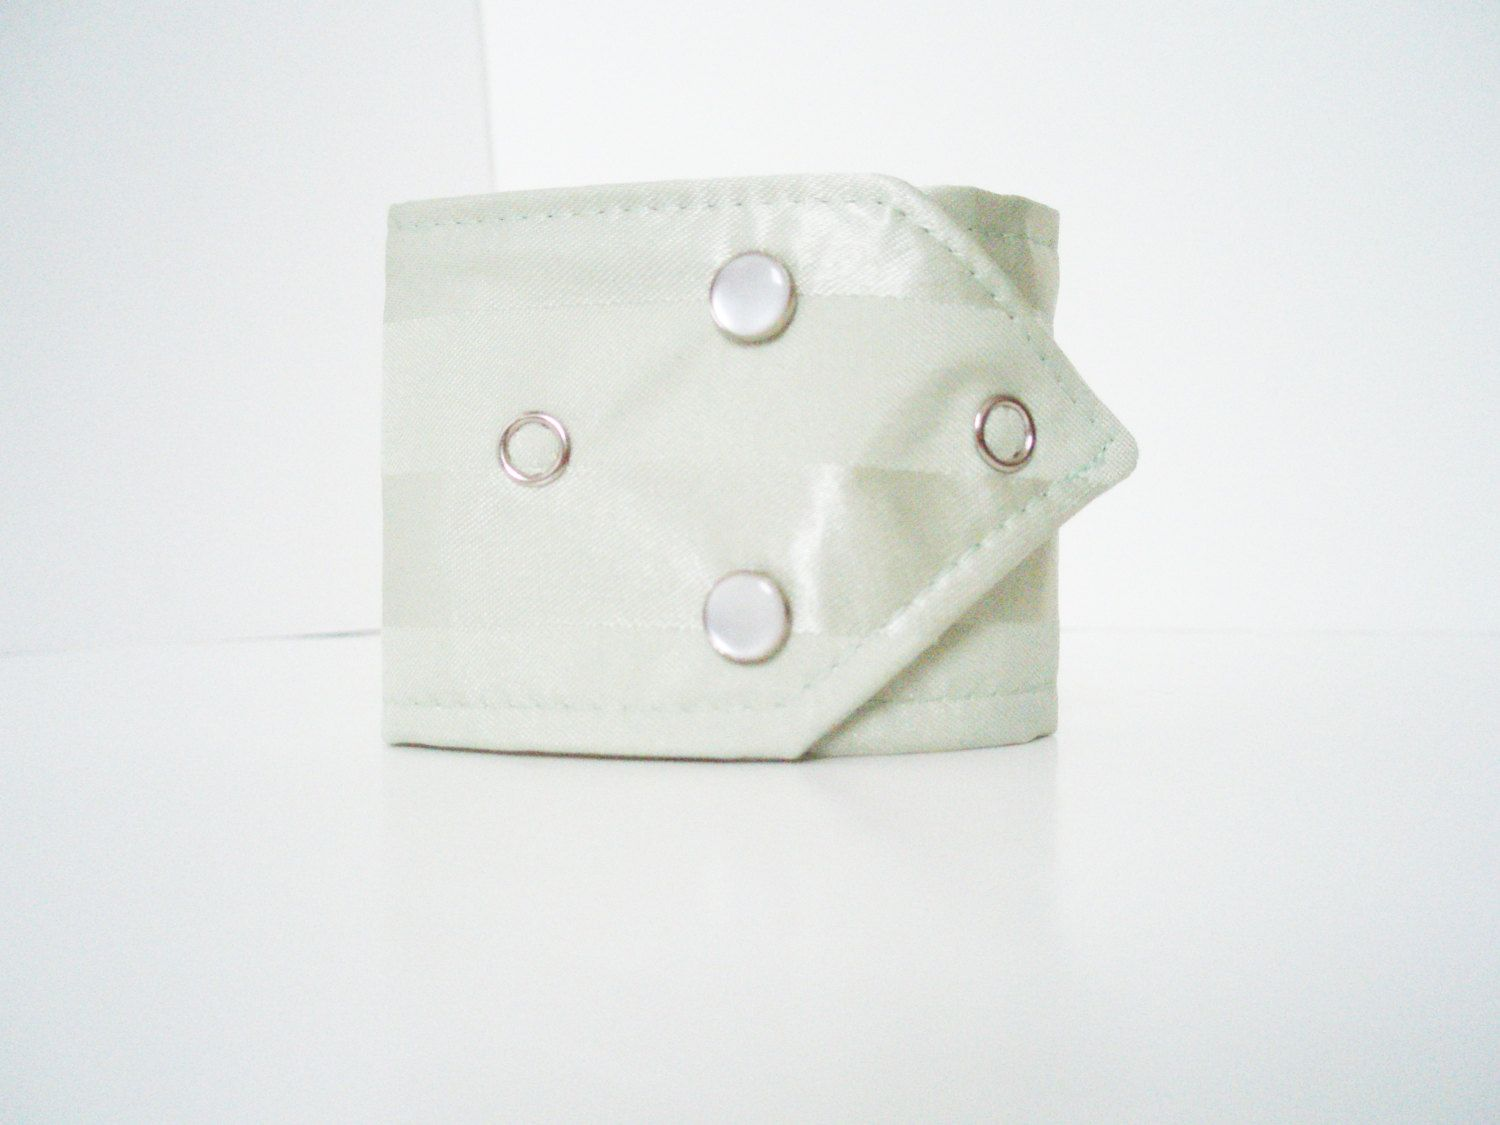 Fabric Cuff Bracelet with Pearl and Silver Snaps / For men and women / Urban Jewelry / Statement Jewelry. $10.00, via Etsy.